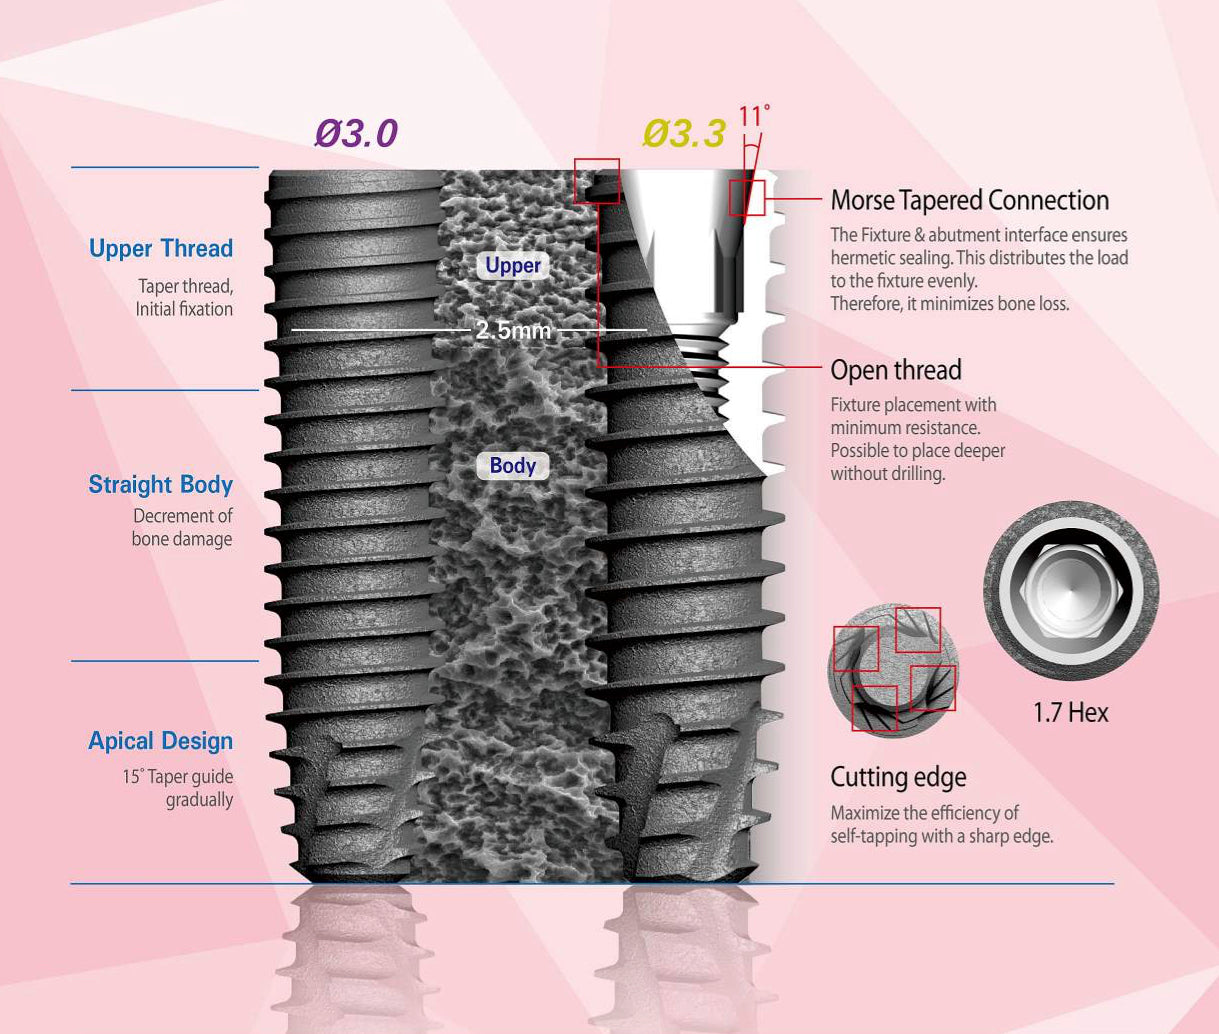 UF(II) Narrow Submerged Dental Implant System - HSA SUrface